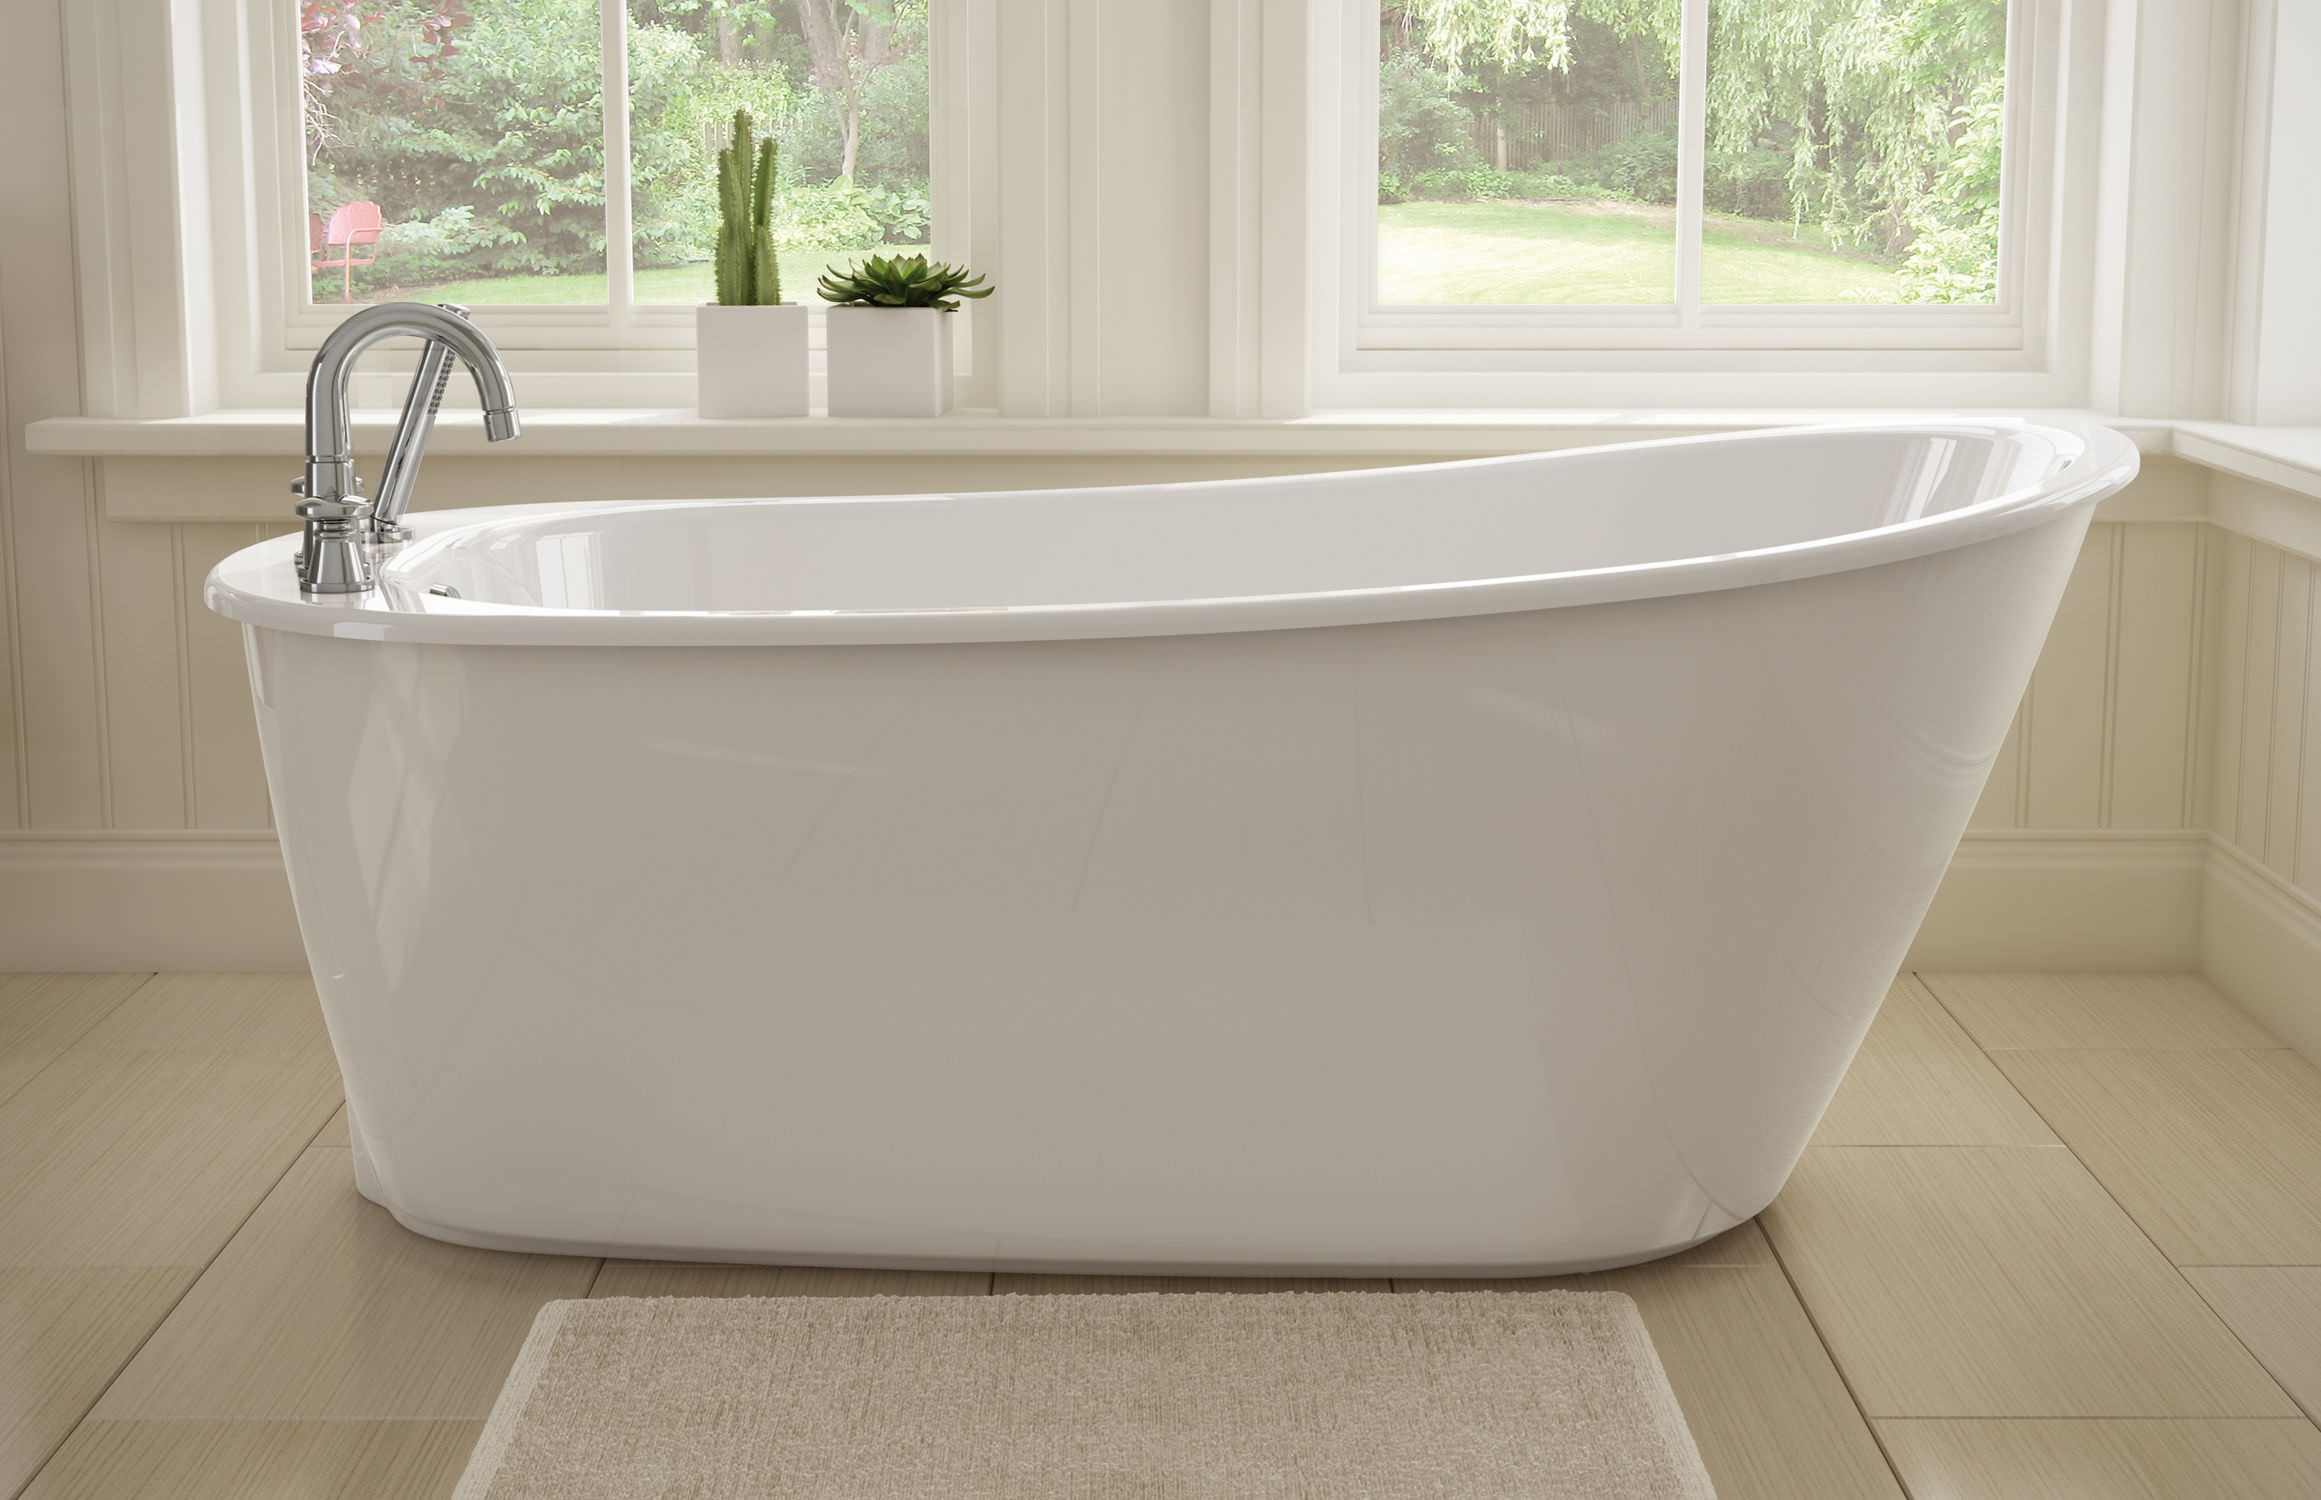 Freestanding Bathtub Oval Acrylic SAX MAAX Bathroom. Freestanding Tub Deck  Mount Faucet.